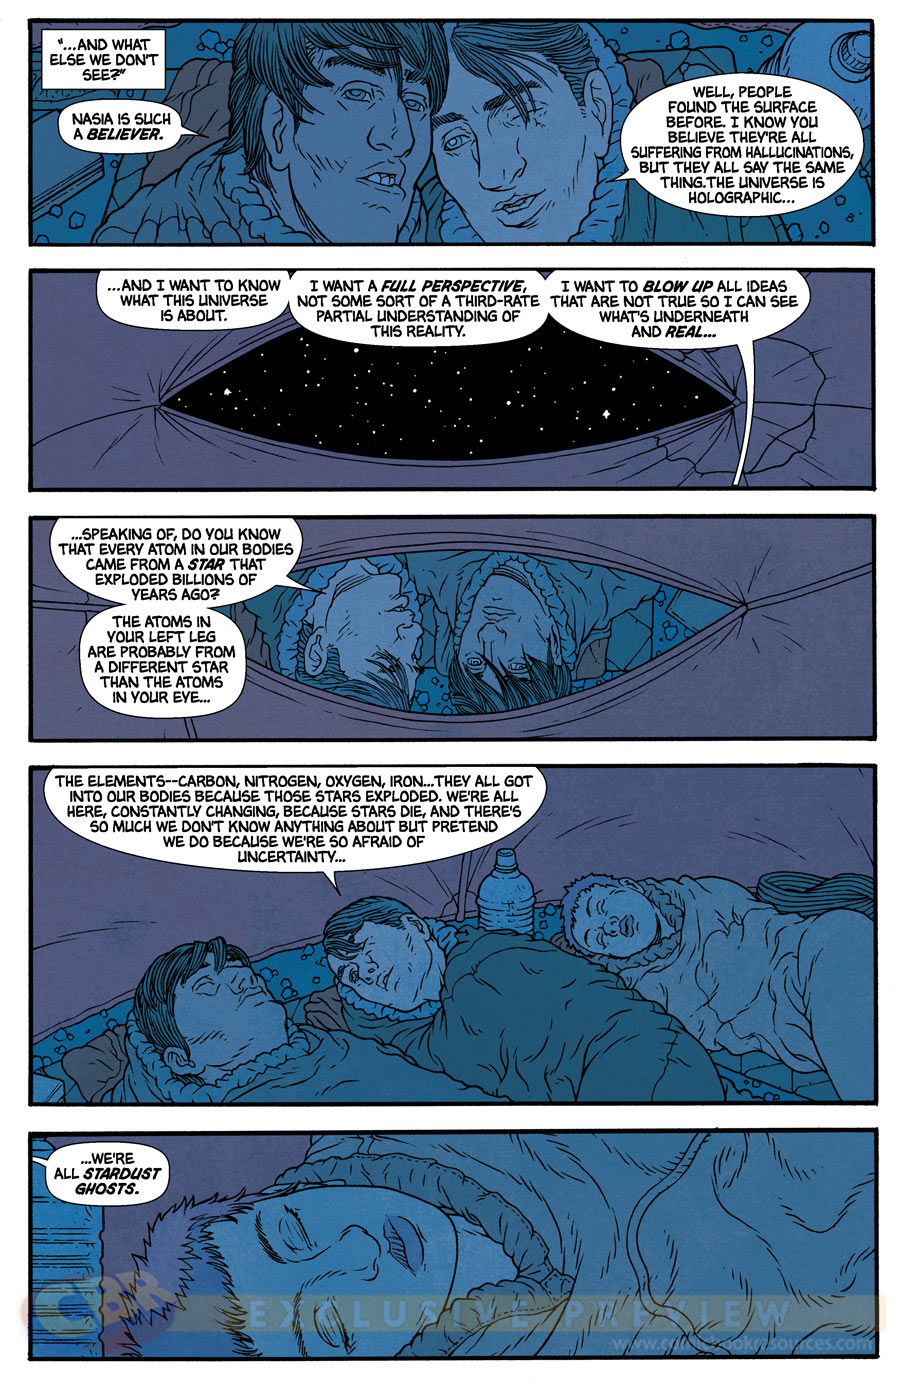 The-Surface01-page3-5a8ca.jpg